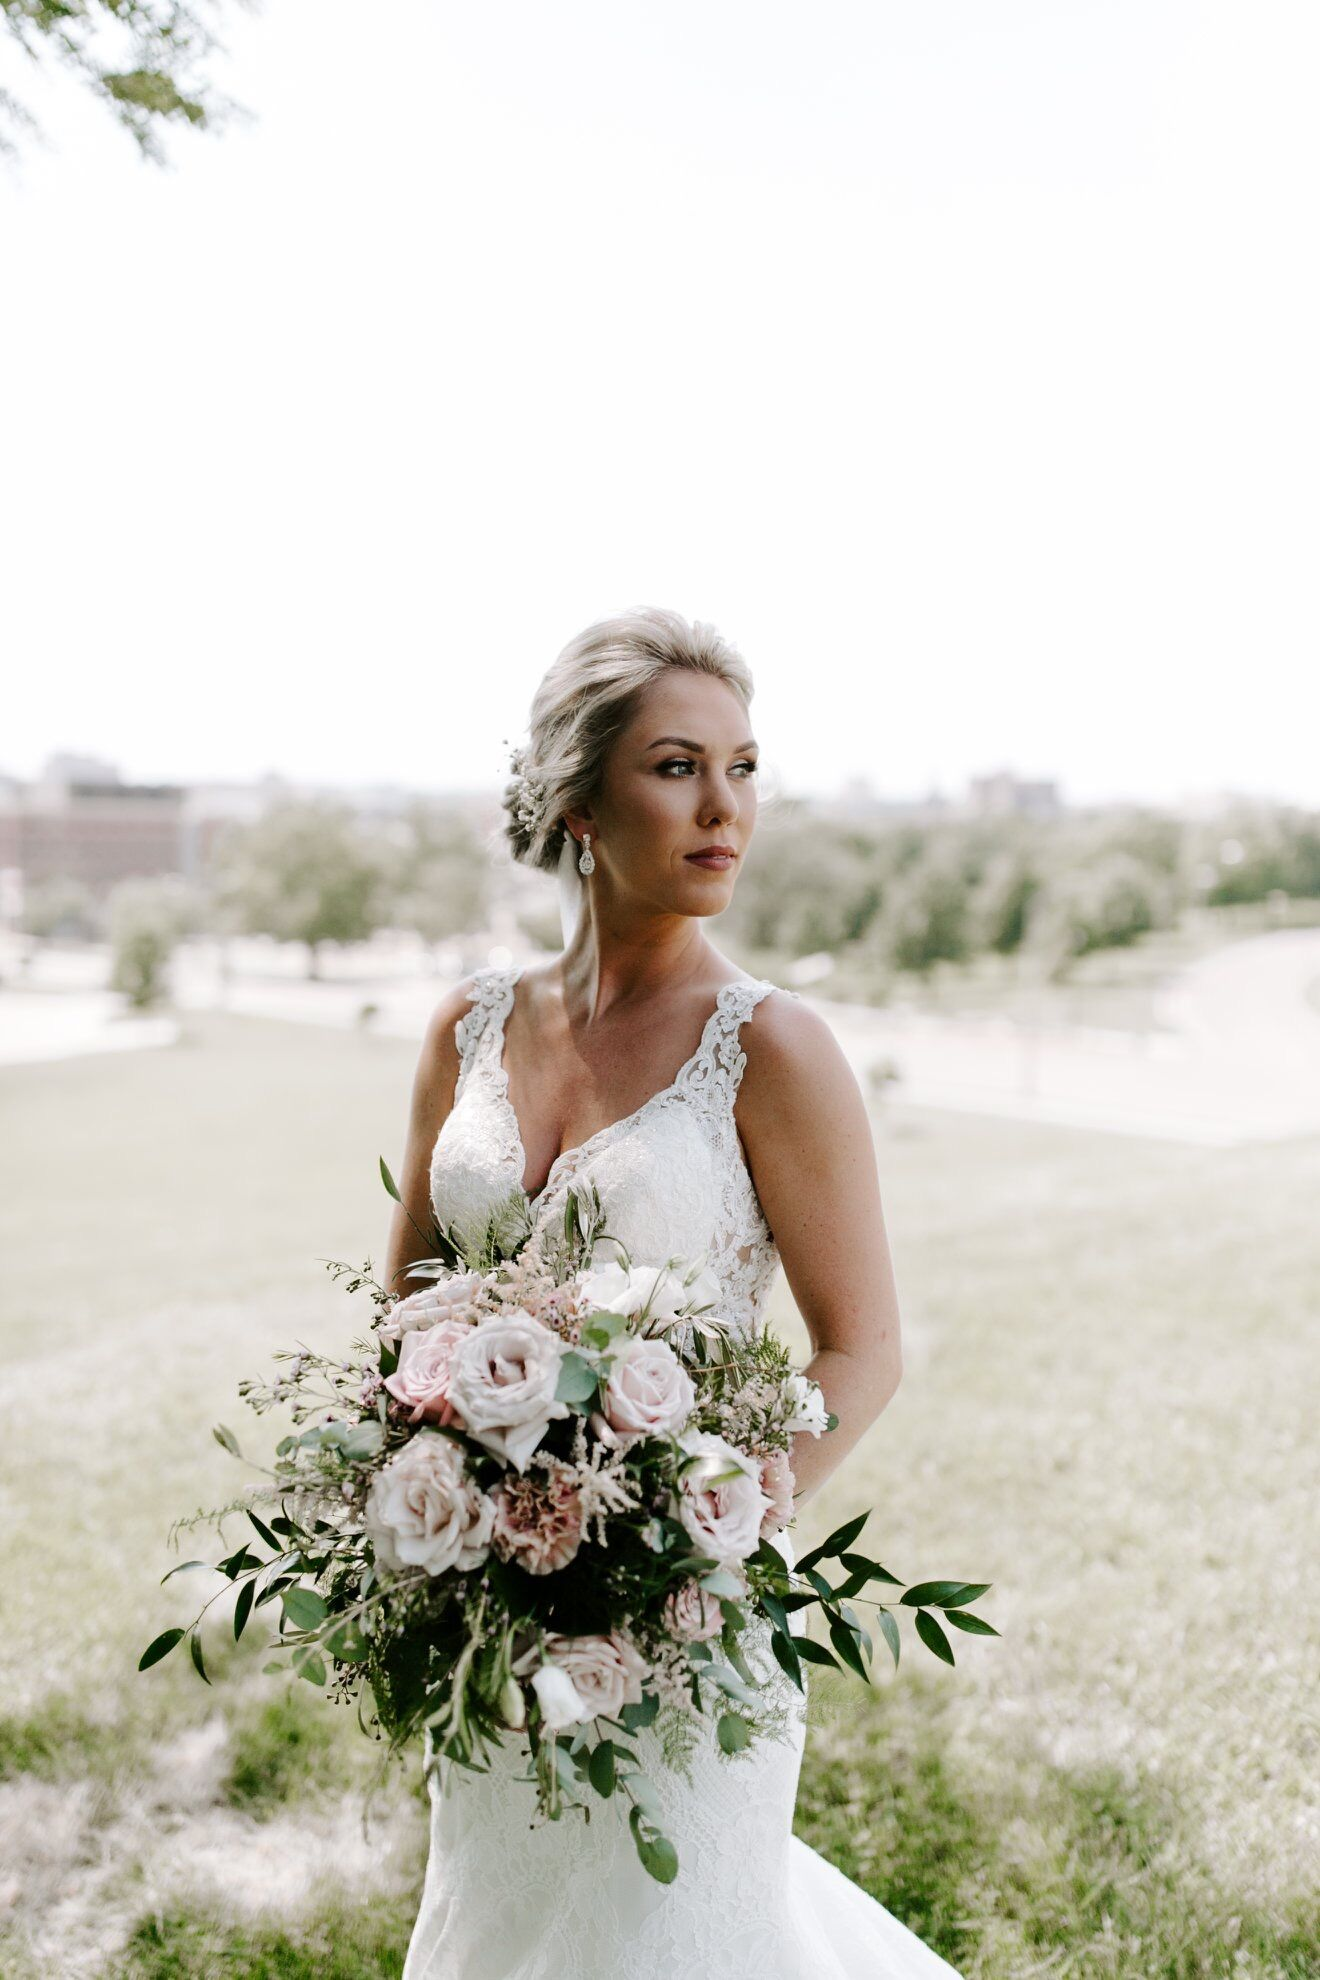 Florists In West Des Moines Ia The Knot